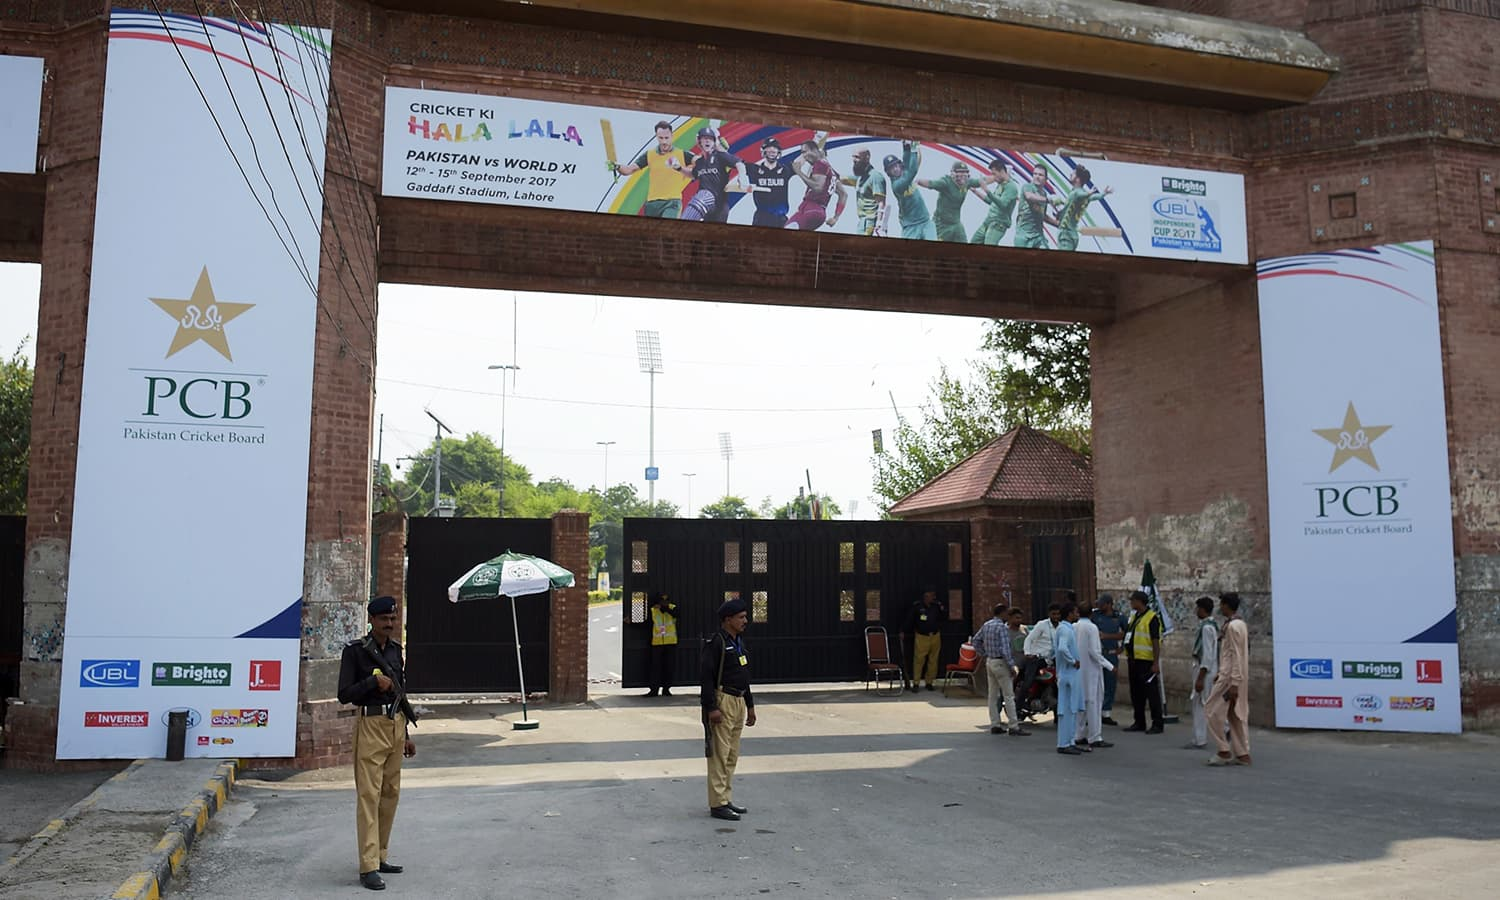 Policemen stand guard at the main entrance of the Gaddafi Cricket stadium on September 12.— AFP